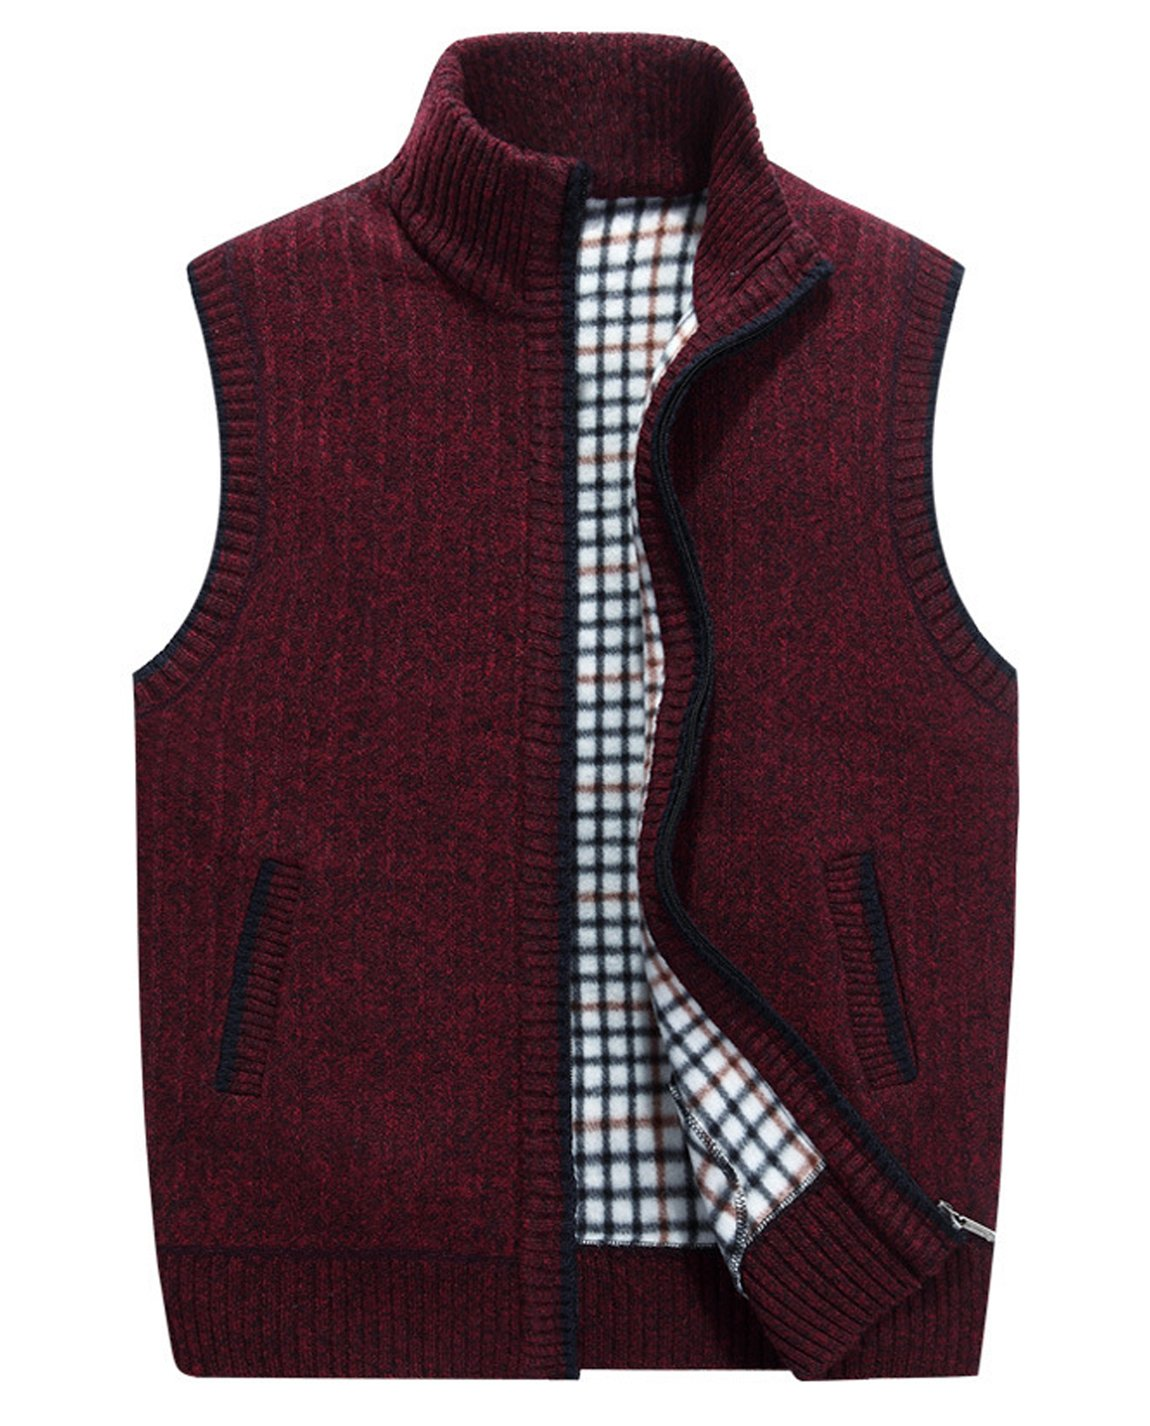 HOW'ON Men's Stand Collar Loose Zipper Sleeveless Knitted Cardigan Sweater Vest Outwear Jacket